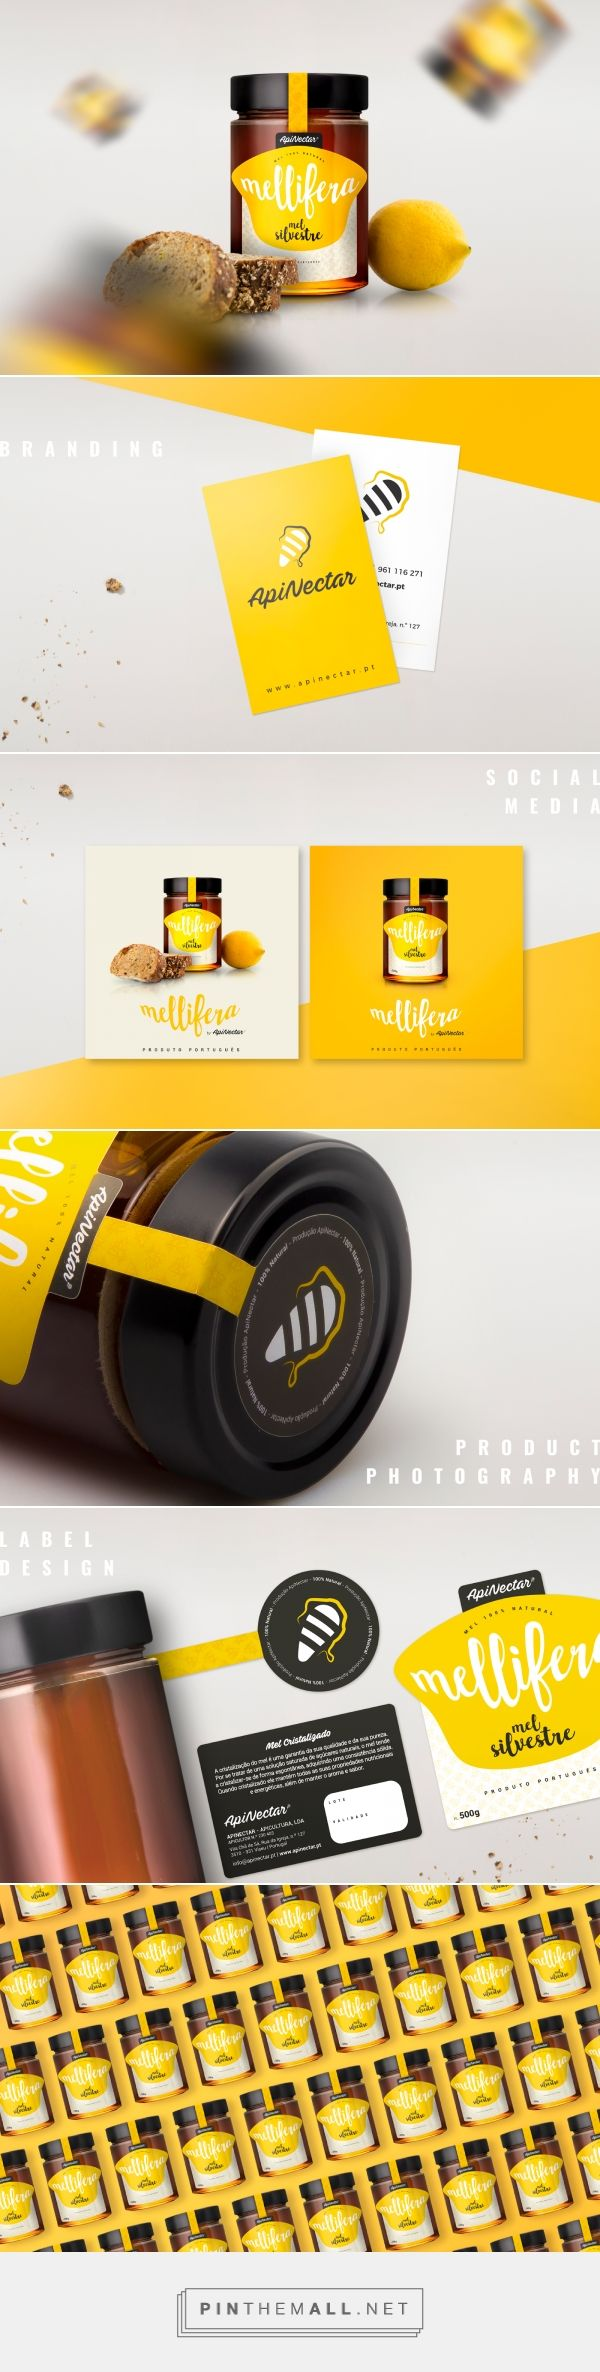 Mellifera by Apinectar - Packaging of the World - Creative Package Design Gallery - http://www.packagingoftheworld.com/2017/06/mellifera-by-apinectar.html